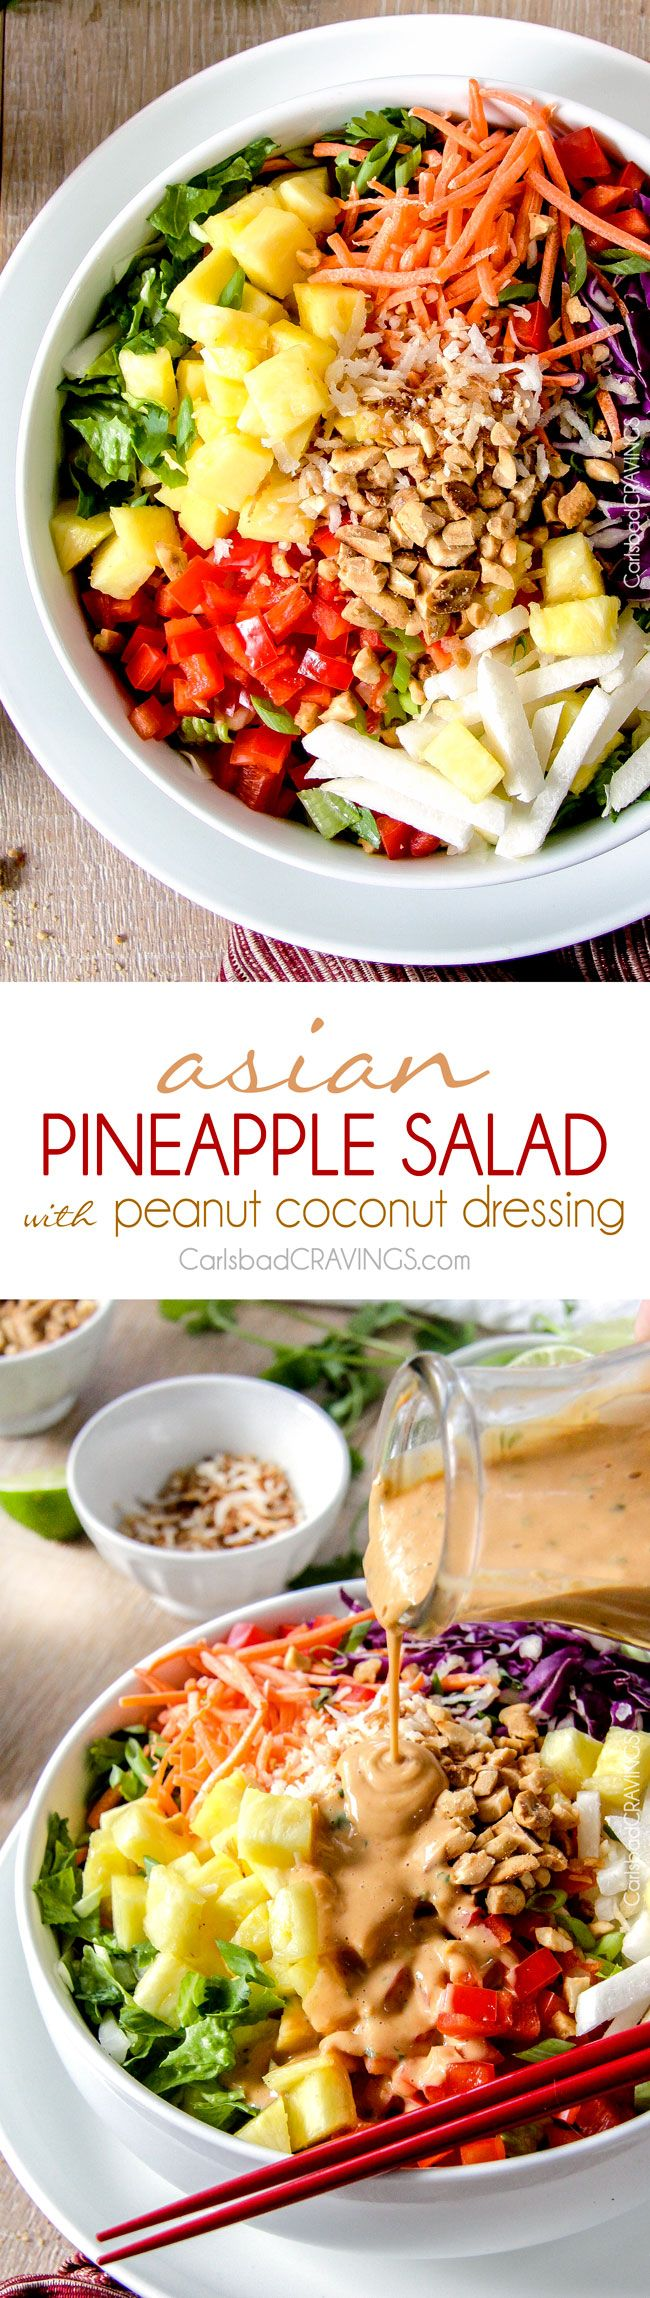 Asian Pineapple Salad with Coconut Peanut Dressing is a salad lover's dream! packed with refreshing pineapple and crunchy peanuts, peppers, carrots, jicama and coconut all doused with the most AMAZING silky Coconut Peanut Dressing that I could drink by itself! via @carlsbadcraving